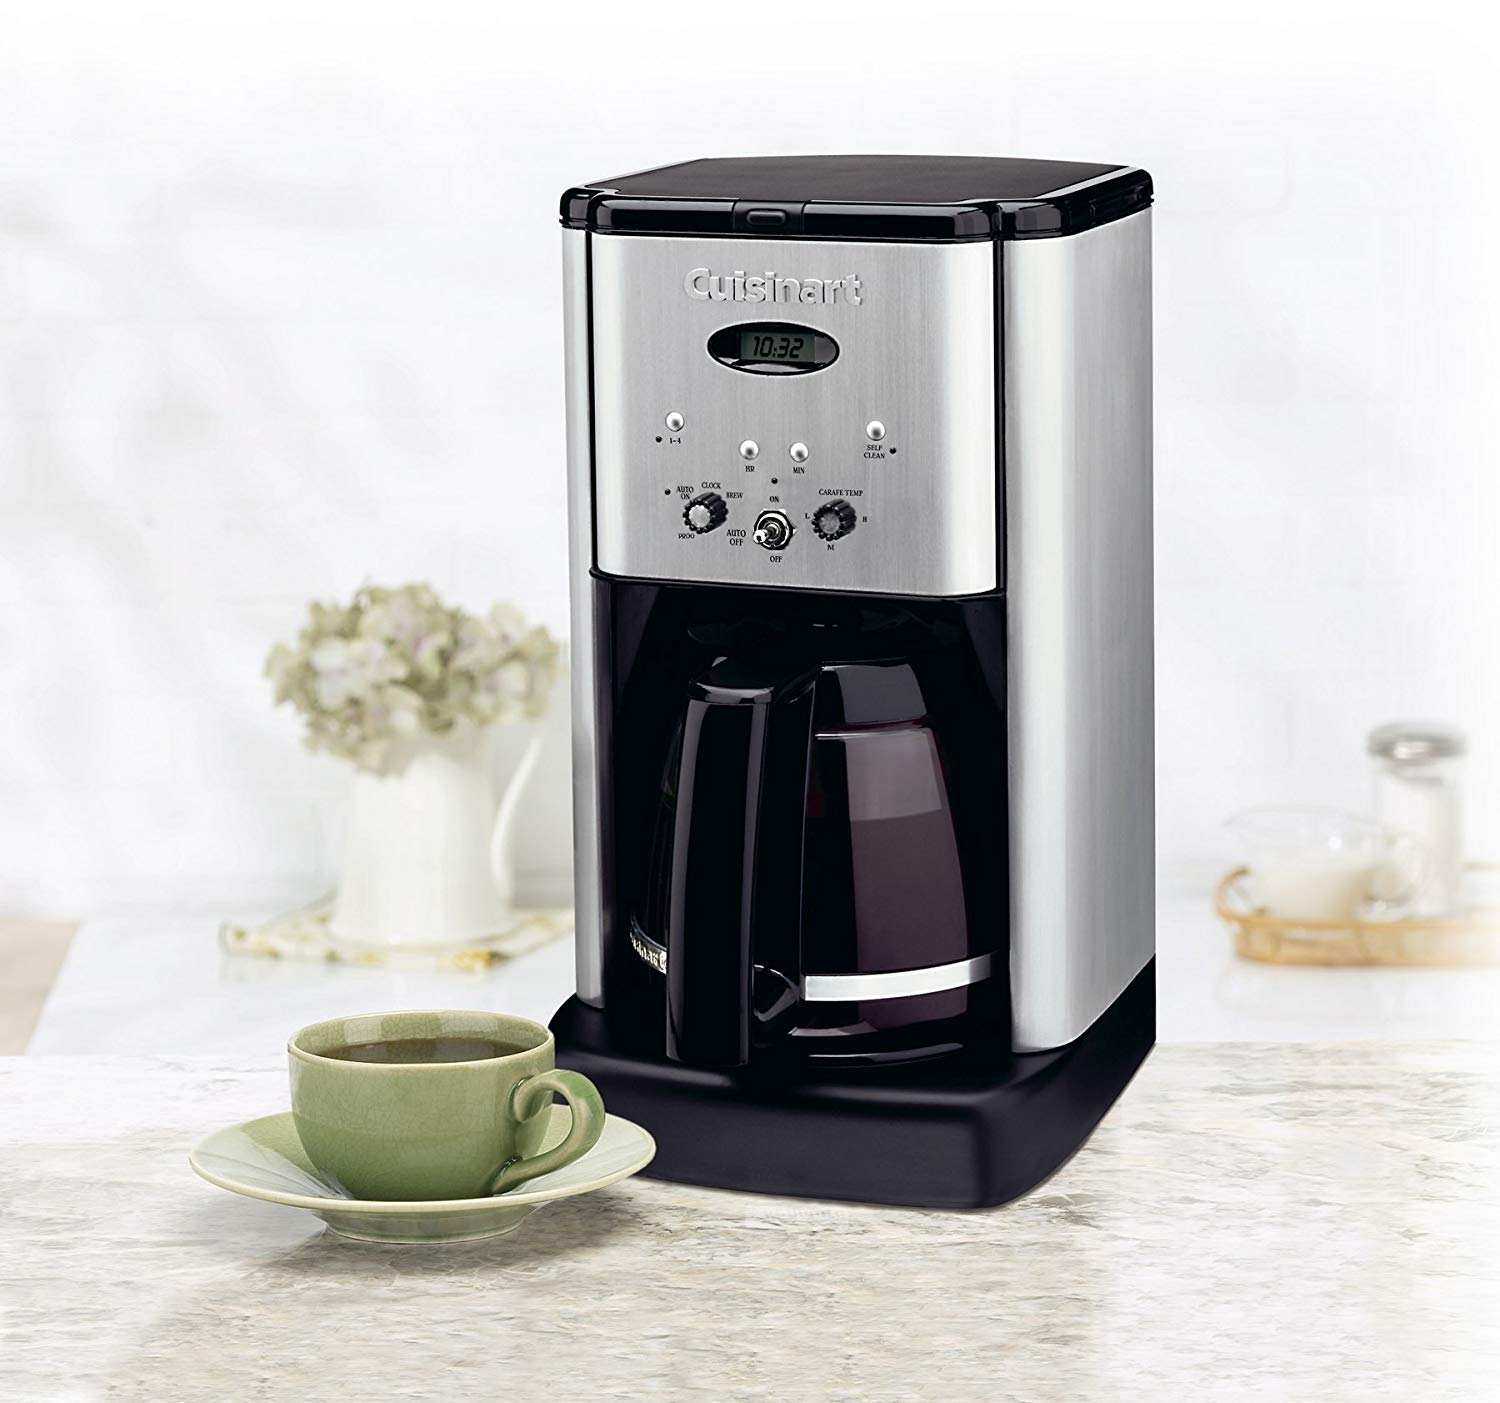 Cuisinart DCC-1200 12 Cup Coffeemaker, Black/Silver With Filters by Cuisinart (Image #3)